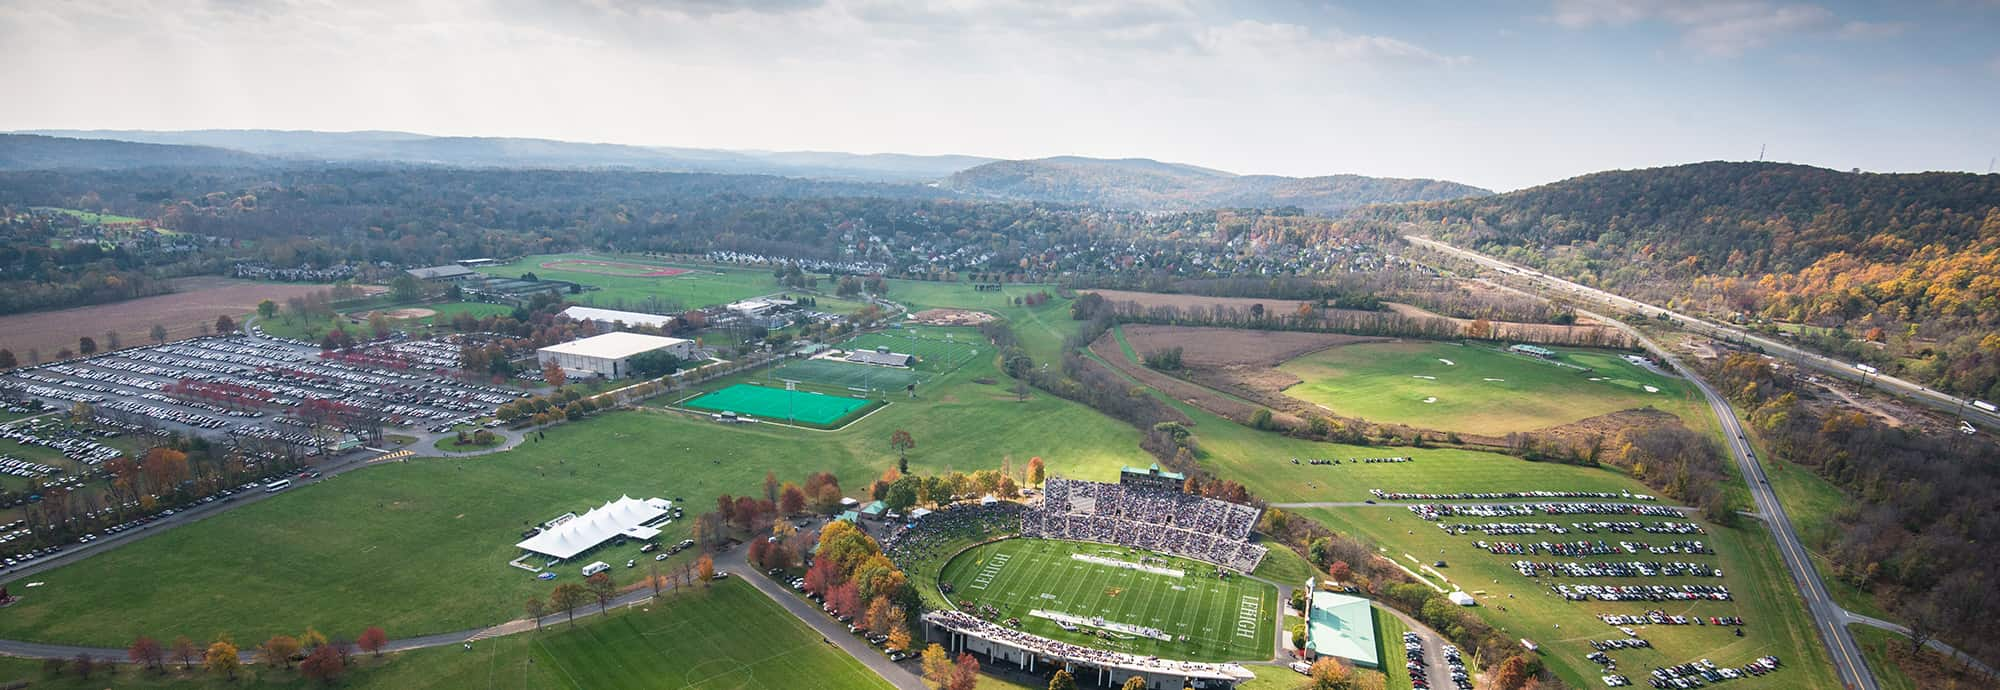 Aerial view of Lehigh University Goodman Campus